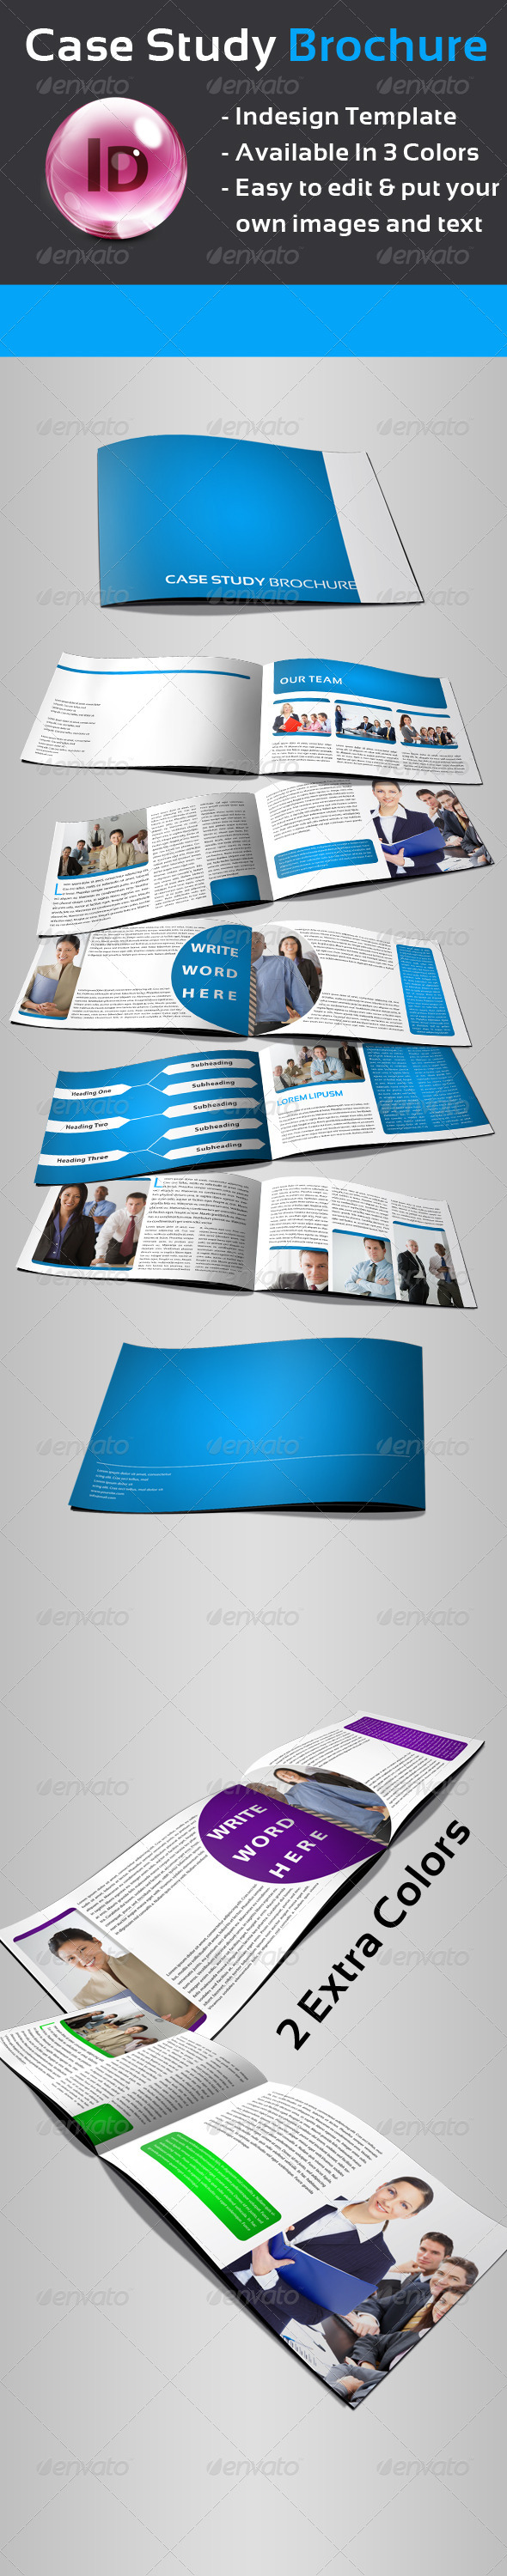 GraphicRiver Case Study Brochure 557649